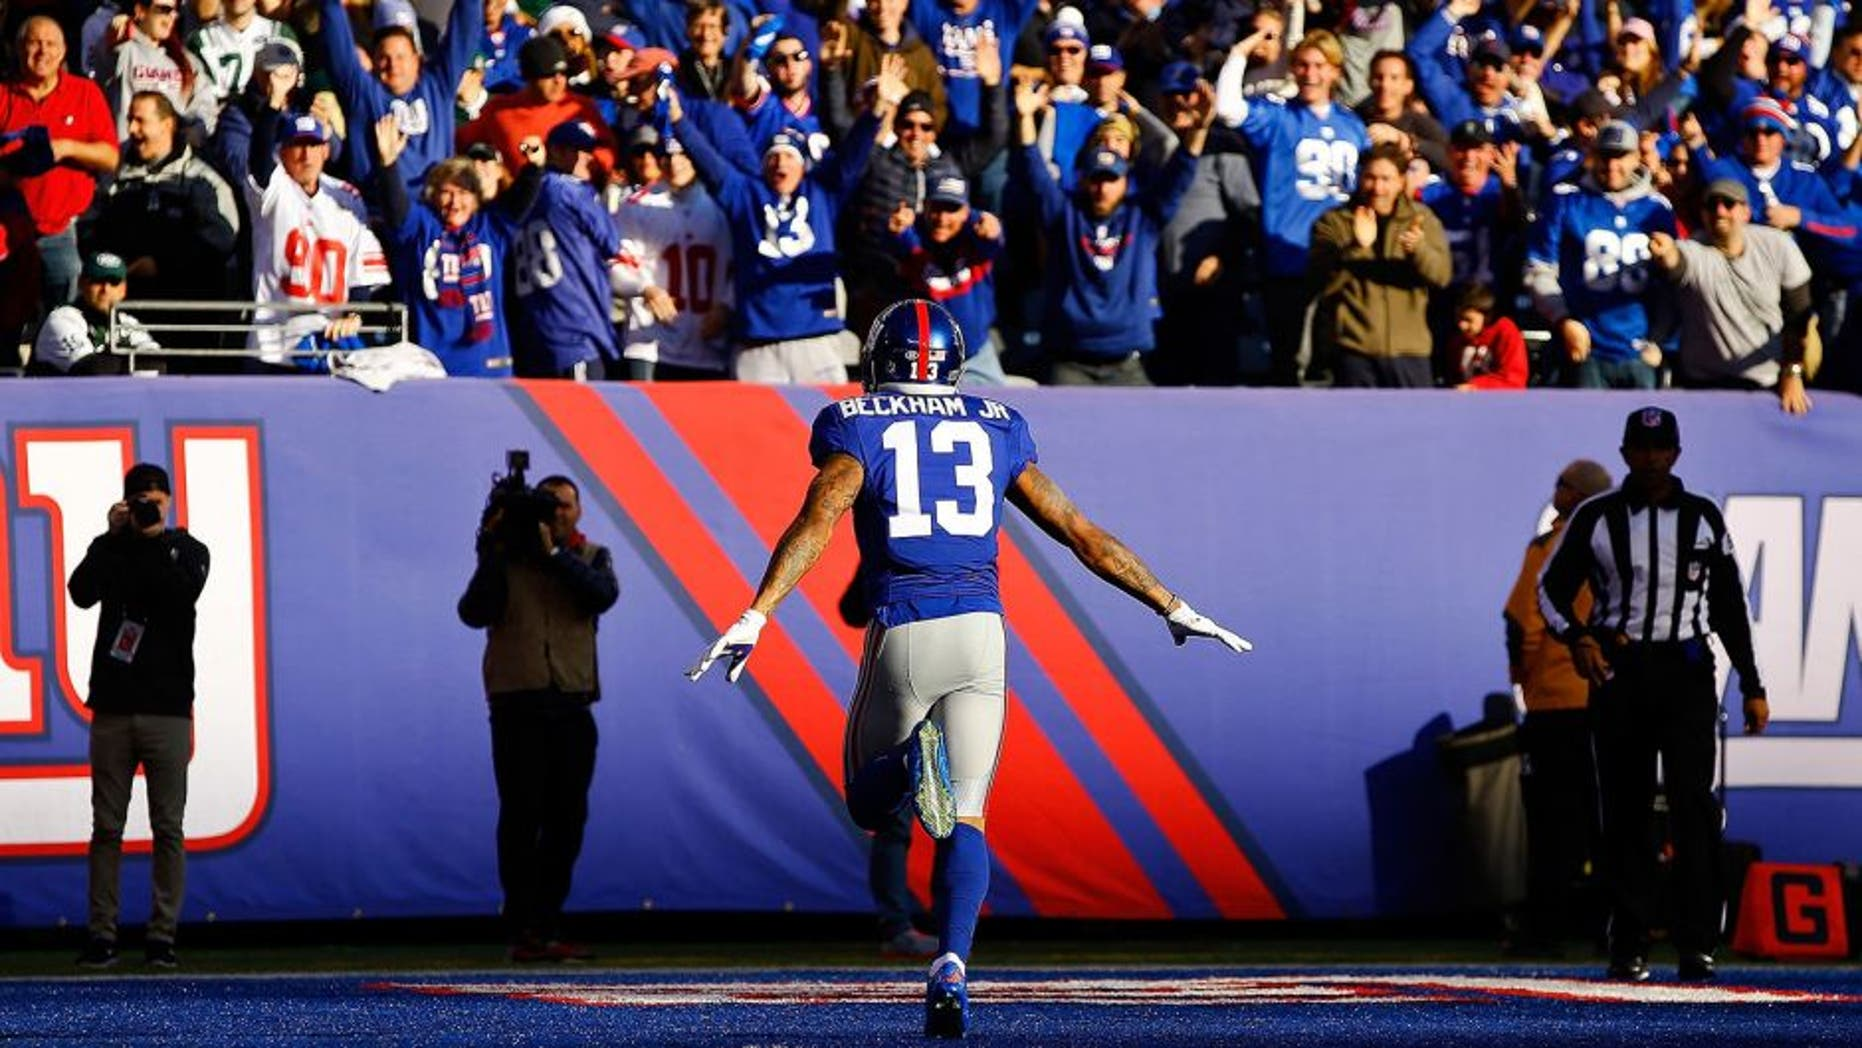 EAST RUTHERFORD, NJ - DECEMBER 06: Odell Beckham Jr. #13 of the New York Giants celebrates after scoring a 72 yard long touchdown against the New York Jets at MetLife Stadium on December 6, 2015 in East Rutherford, New Jersey. (Photo by Al Bello/Getty Images)